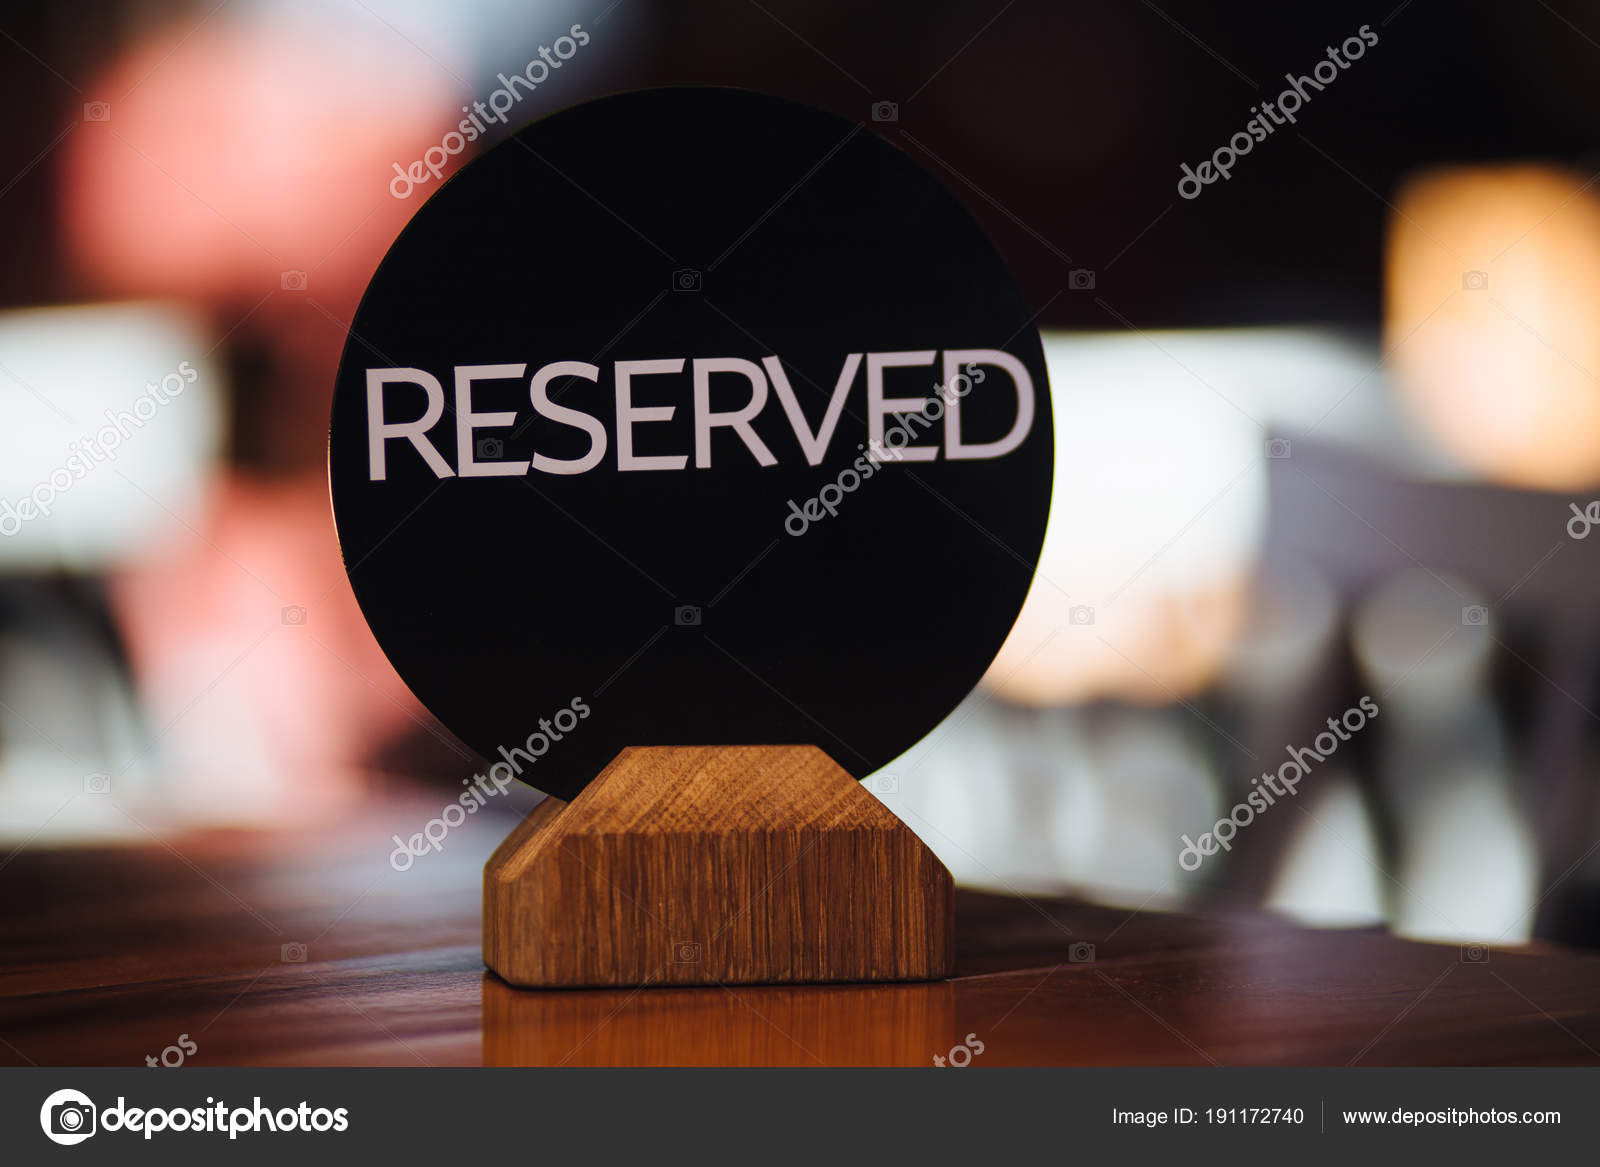 shot of reserved sign on restaurant table stands against blurred